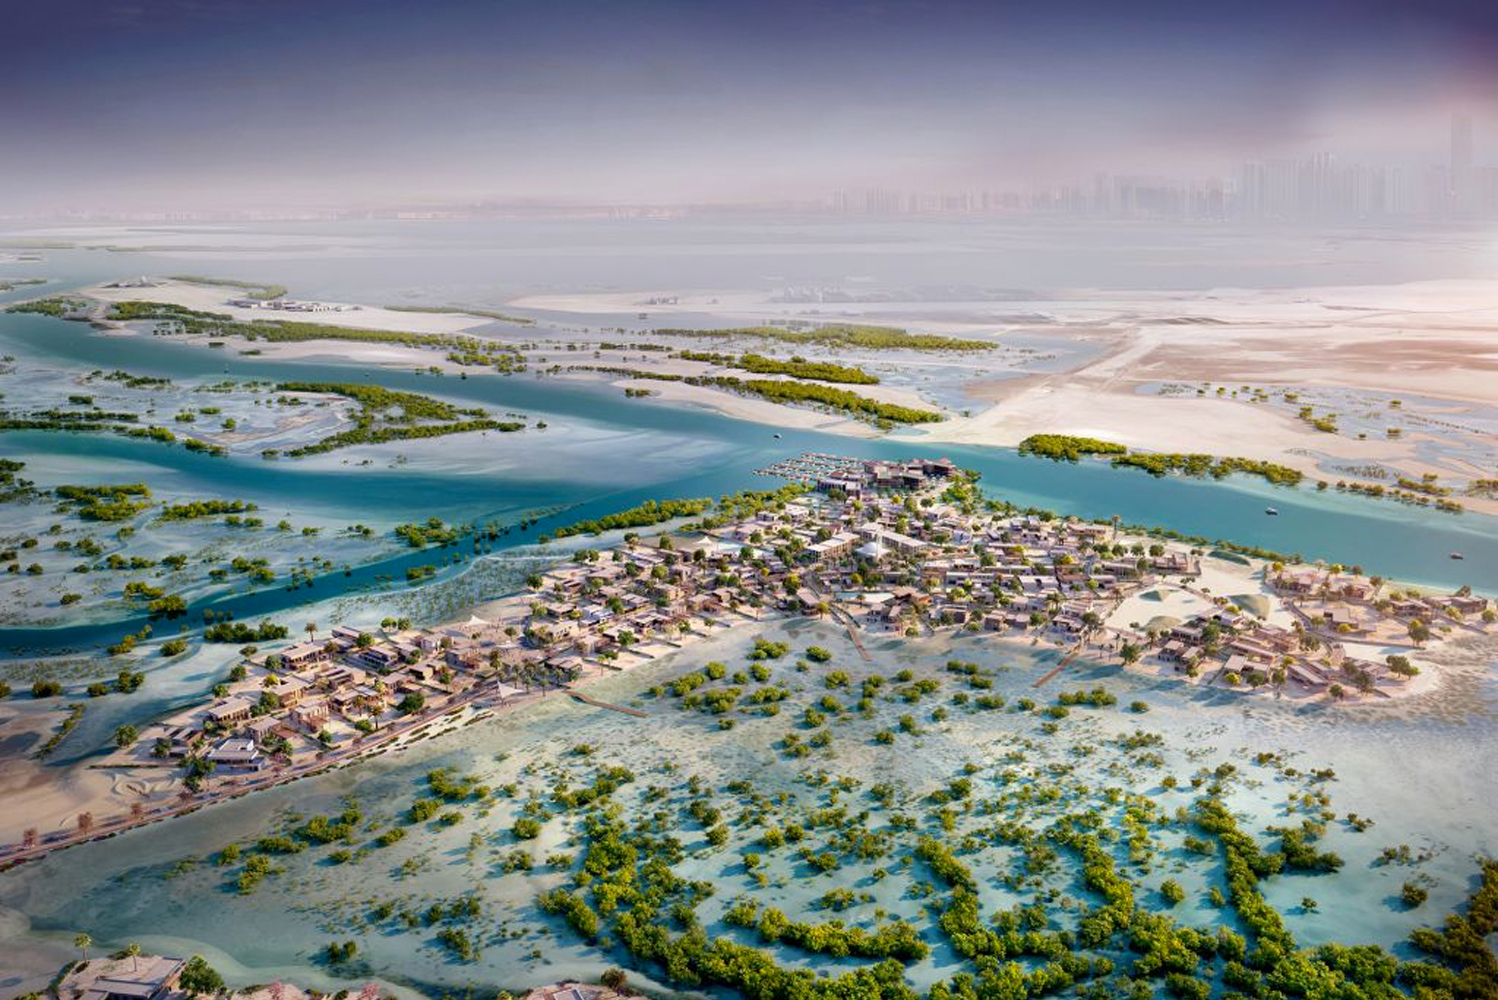 Masterplanned by Broadway Malyan, Jubail will be designed to integrate with the existing natural habitat of the island, including the coastal mangroves.